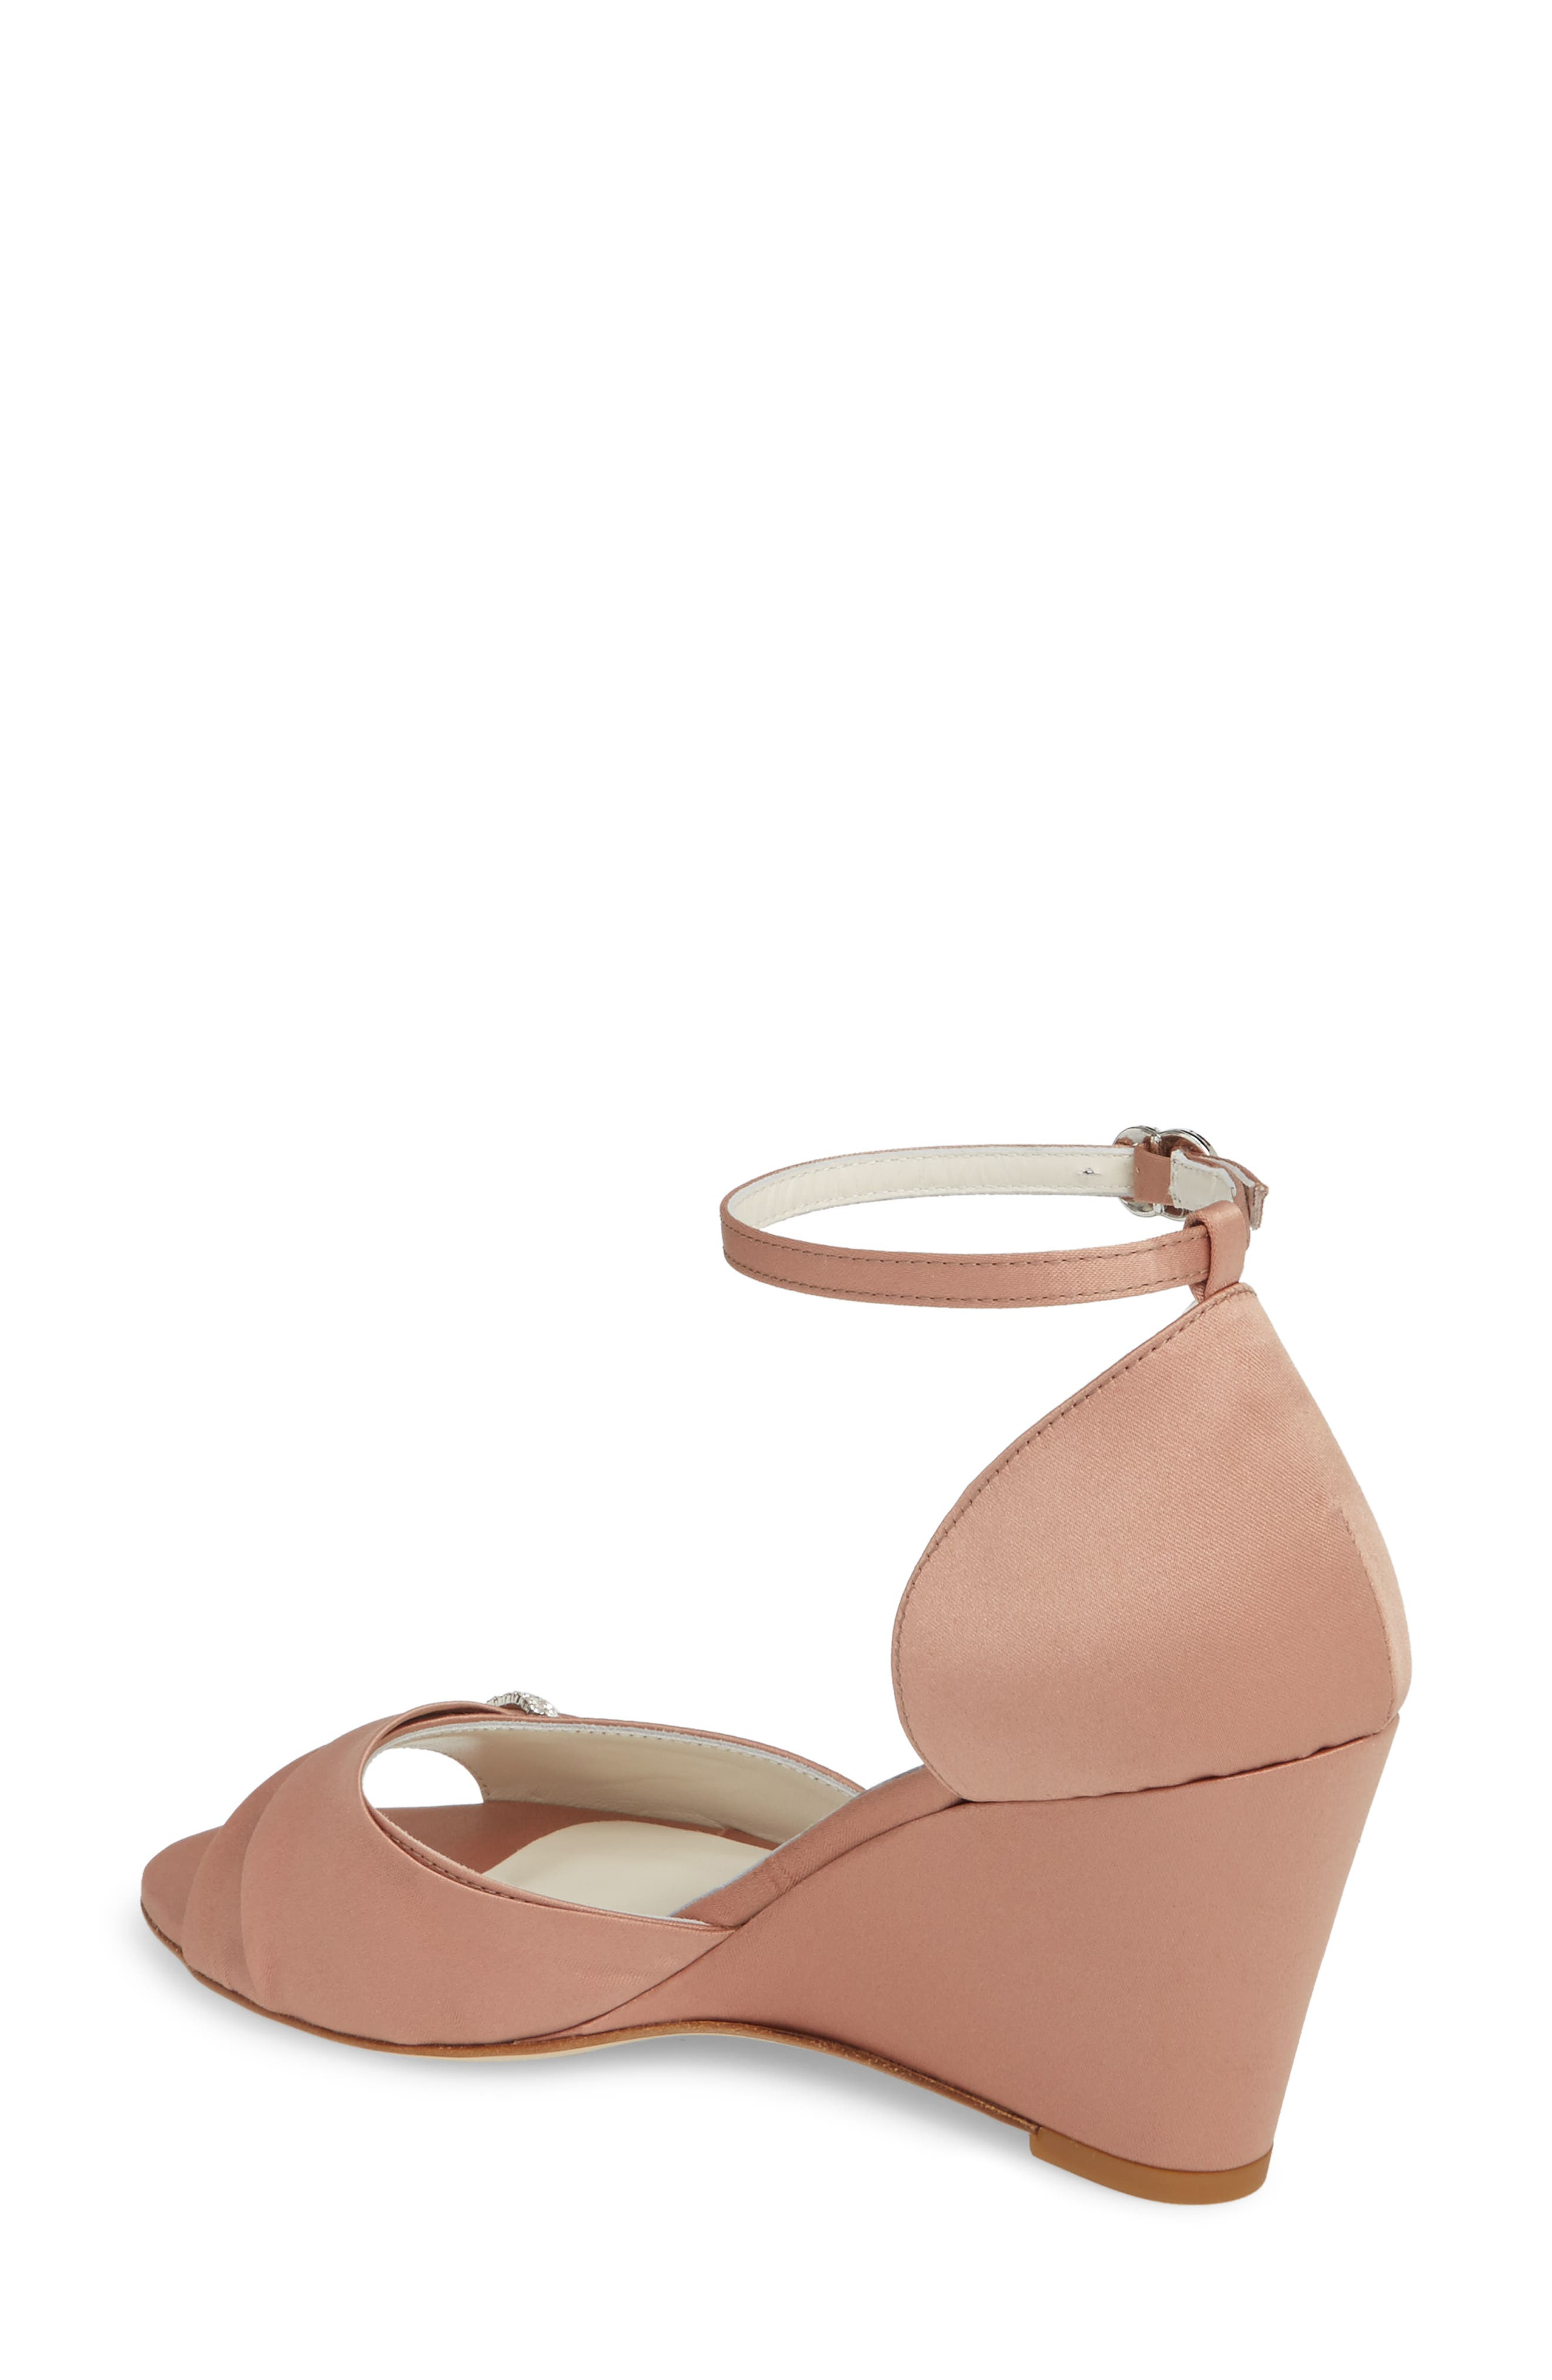 Queenie Ankle Strap Wedge Sandal,                             Alternate thumbnail 2, color,                             BLUSH SATIN